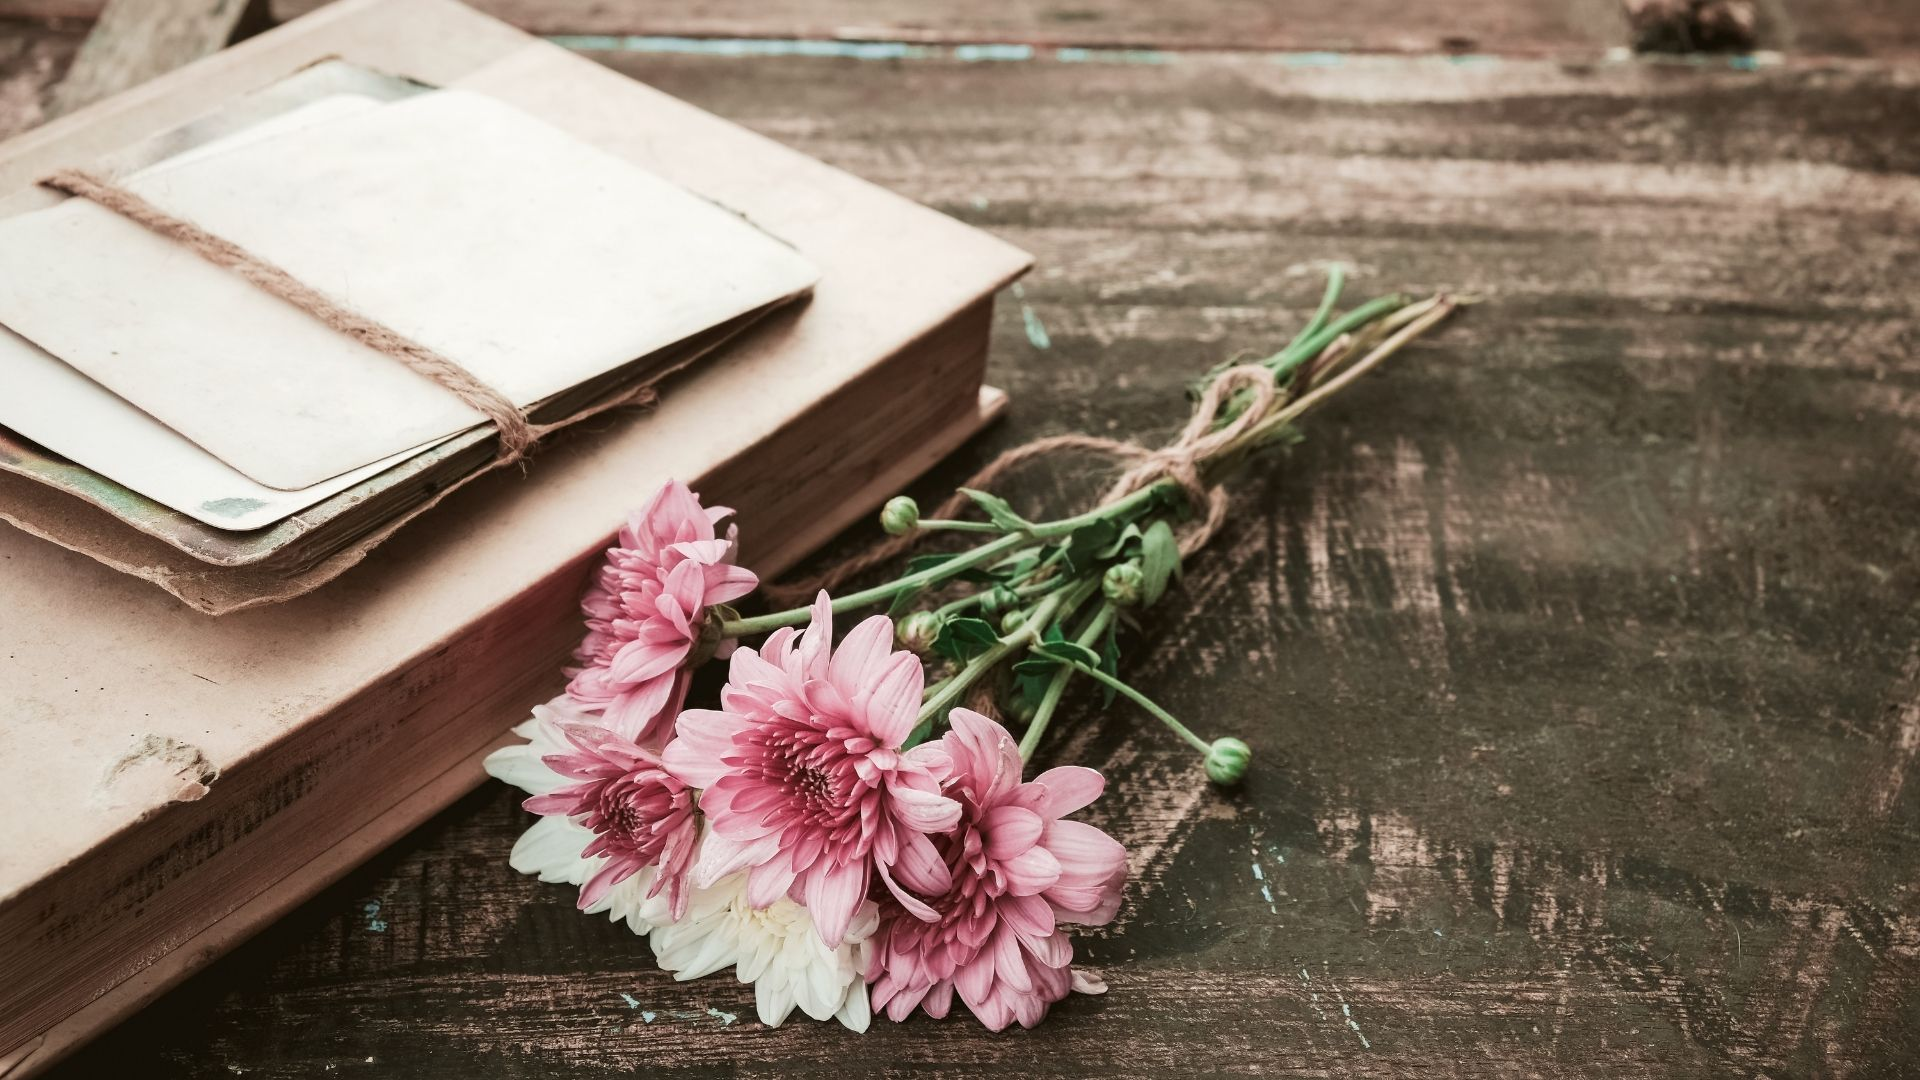 flowers and book